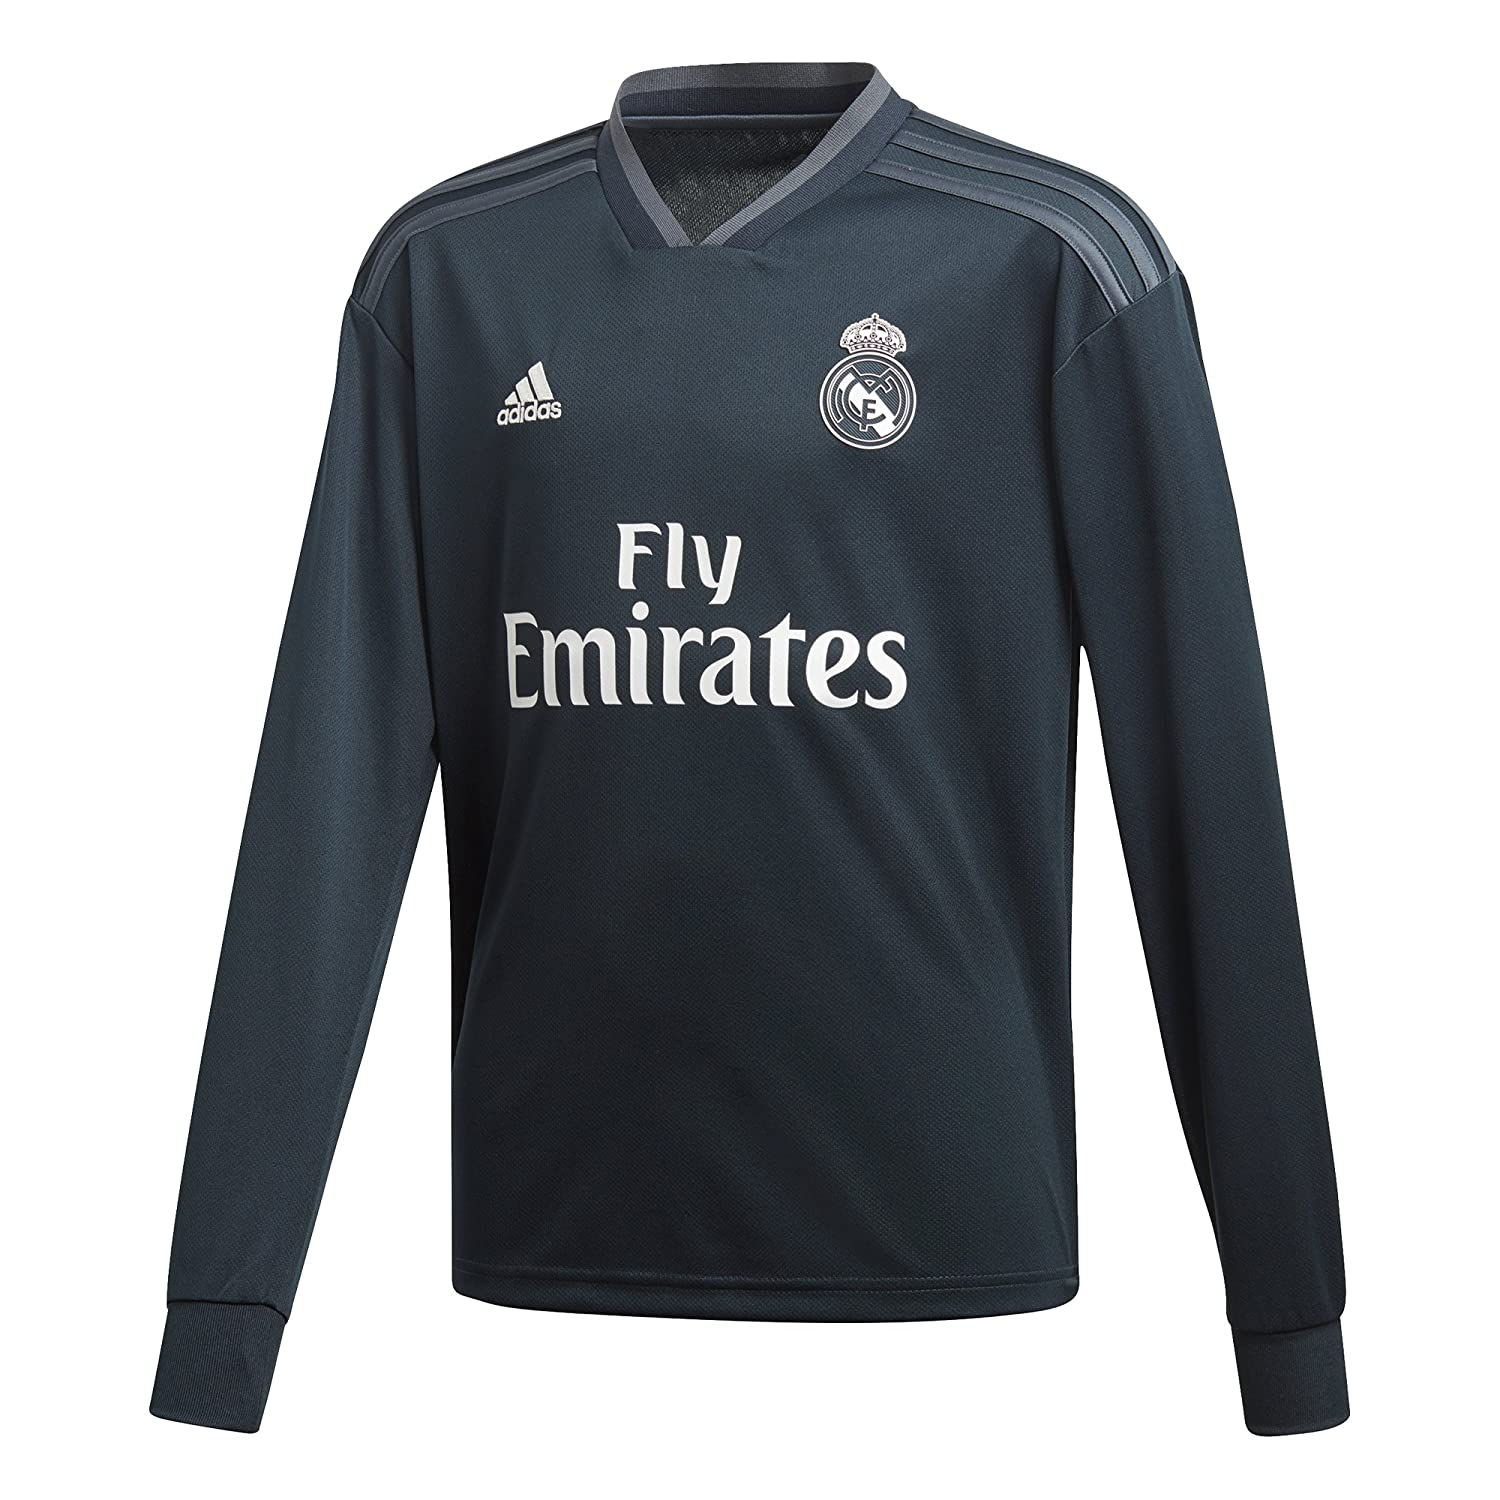 huge discount d3162 a125e Amazon.com : adidas 2018-2019 Real Madrid Away Long Sleeve ...